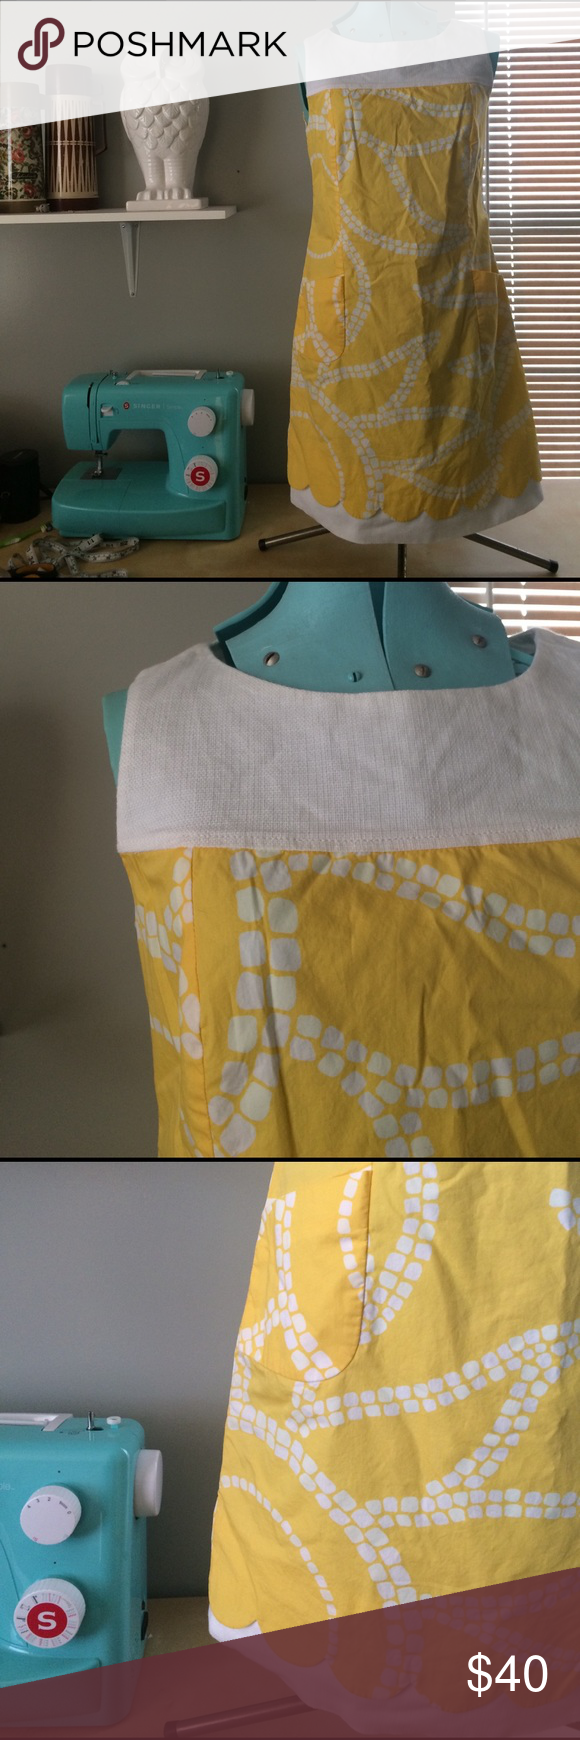 Lilly Pulitzer dress, size 4 Yellow and white Lilly Pulitzer dress. Scalloped hem layered over linen. In good condition - some faint markings in the upper right quadrant of the last photo (this is the back right half of the dress). Lilly Pulitzer Dresses